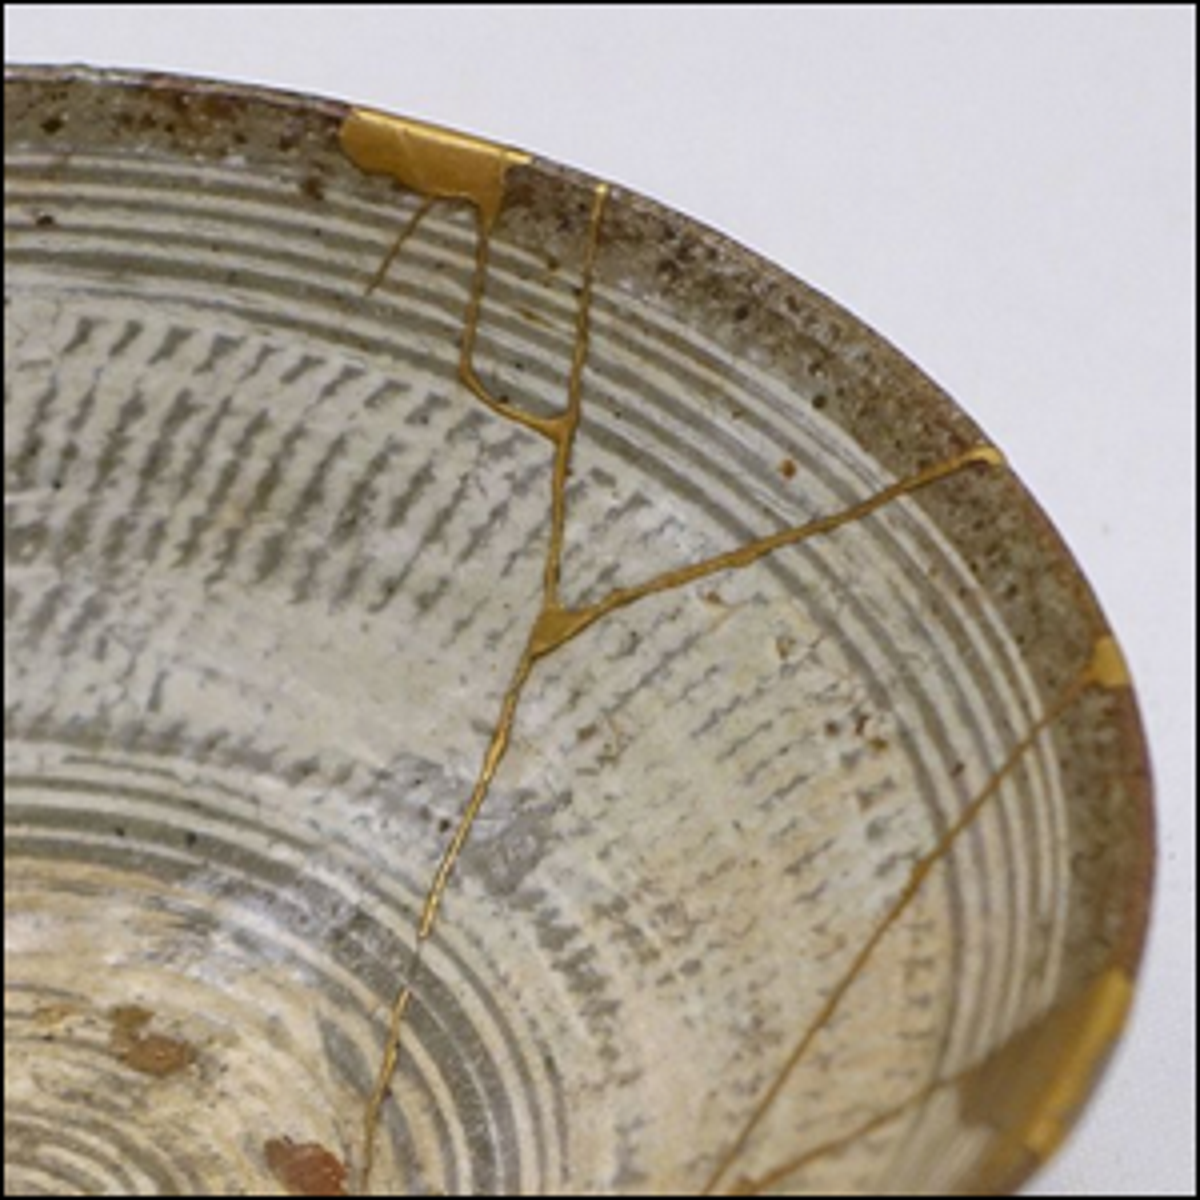 Repair work on a Mishima ware hakeme-type tea bowl with kintsugi gold lacquer, 16th century.